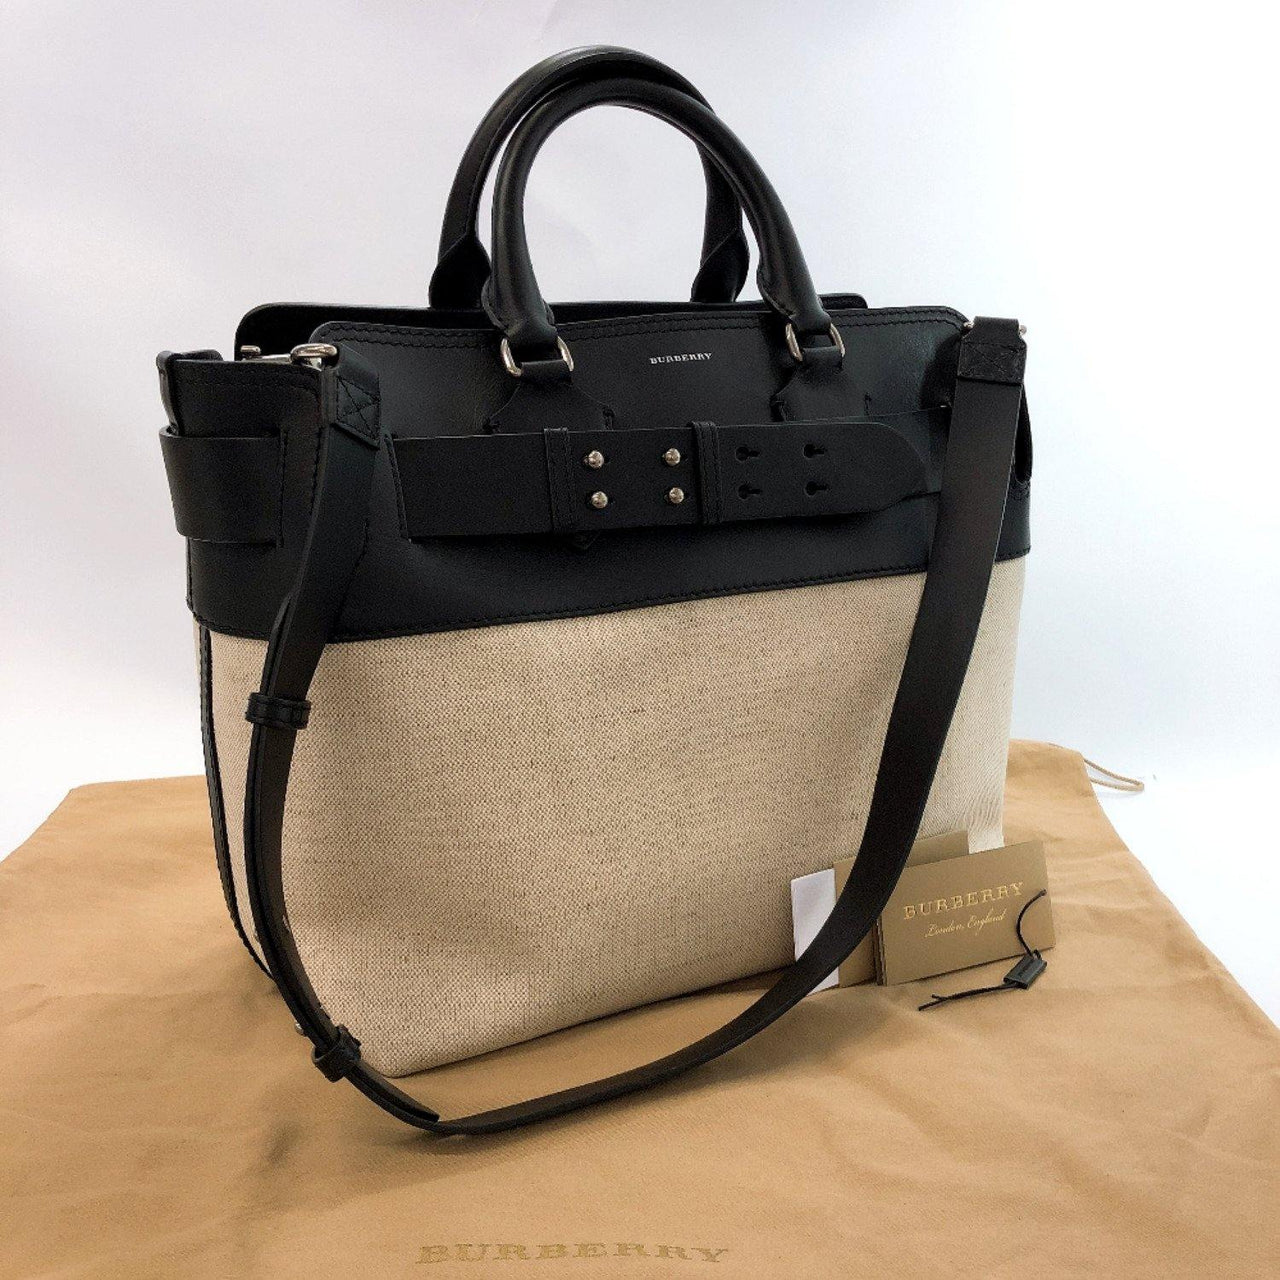 BURBERRY Tote Bag 4075905 Medium belt bag leather/canvas black Women Used - JP-BRANDS.com